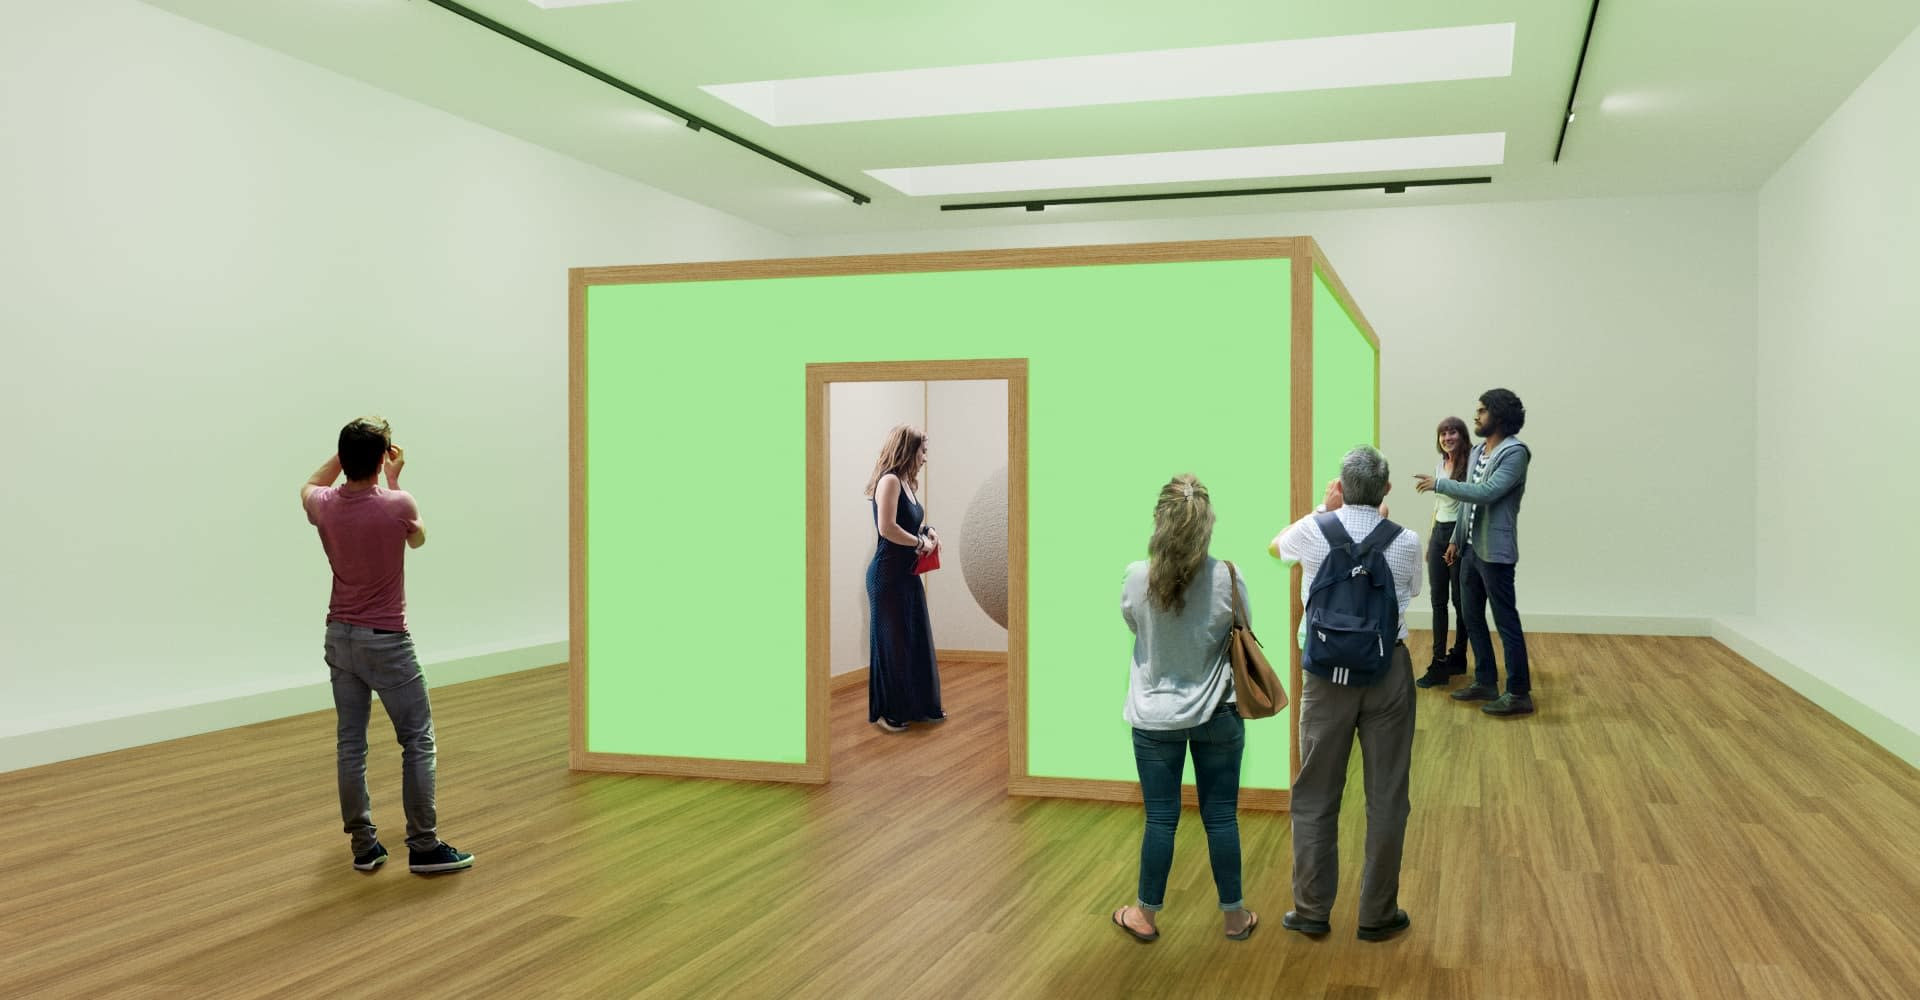 — Reversed Interactions: Facilitating Social Experiences in Art Galleries